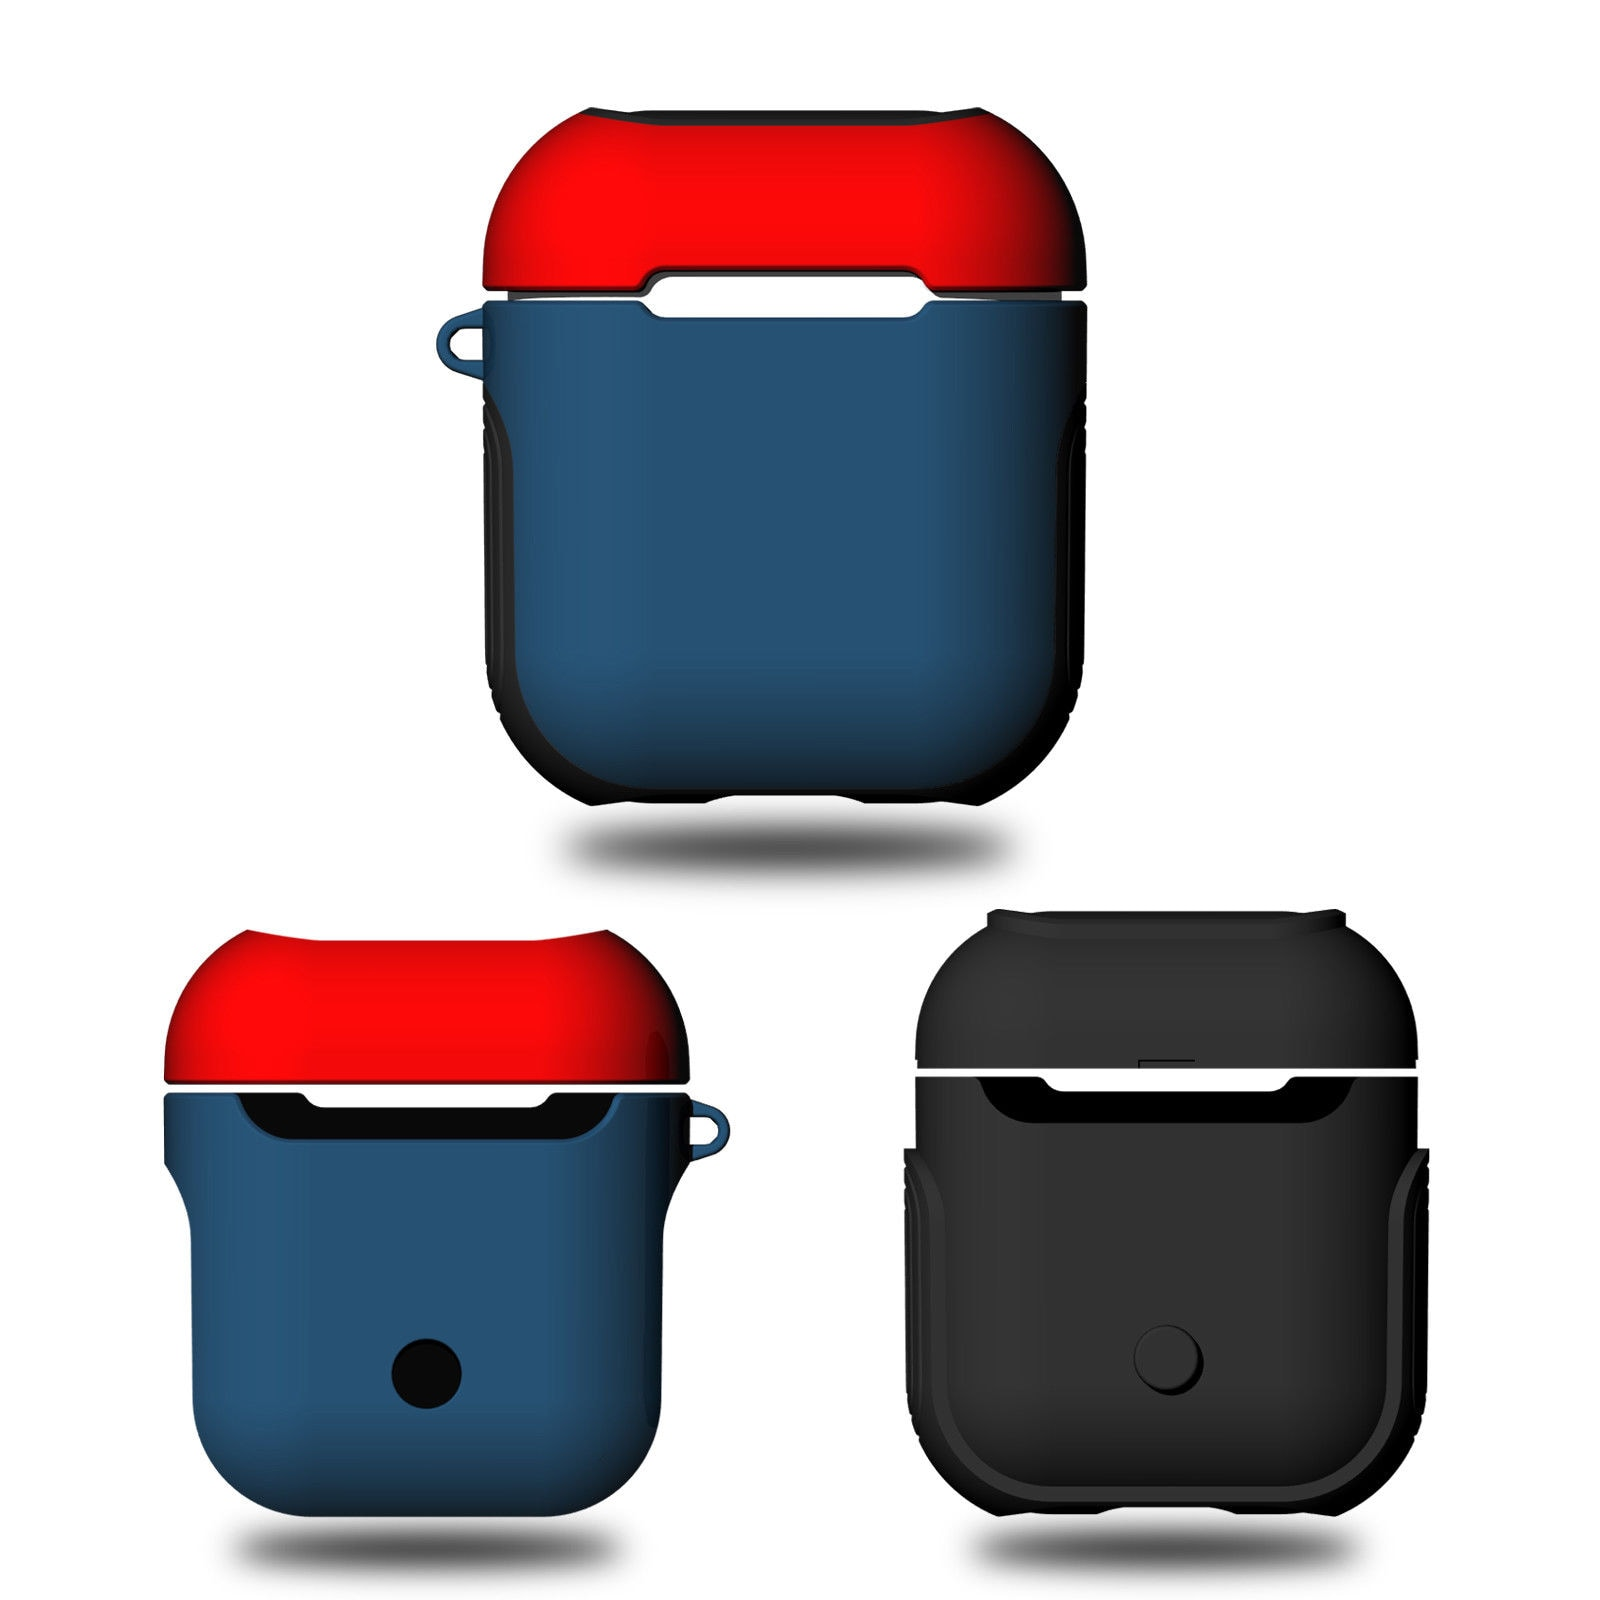 AirPods Silicone Case Protective Cover for Apple Airpod Charging Case Red blue - 4